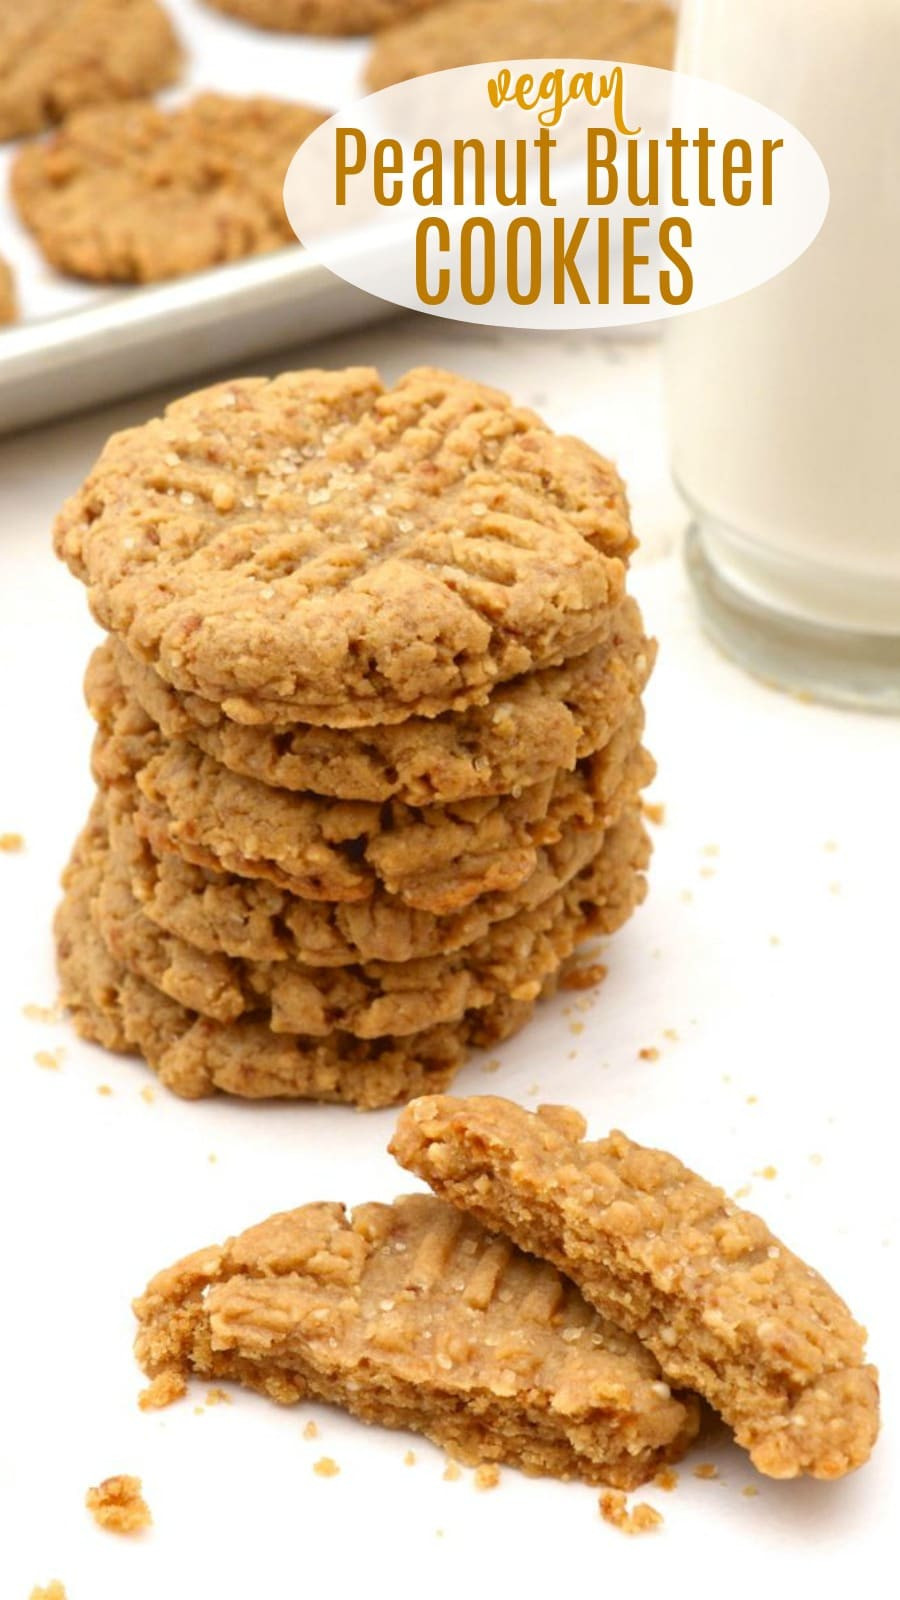 6 vegan peanut butter cookies stacked and one broken with a glass of almond milk.